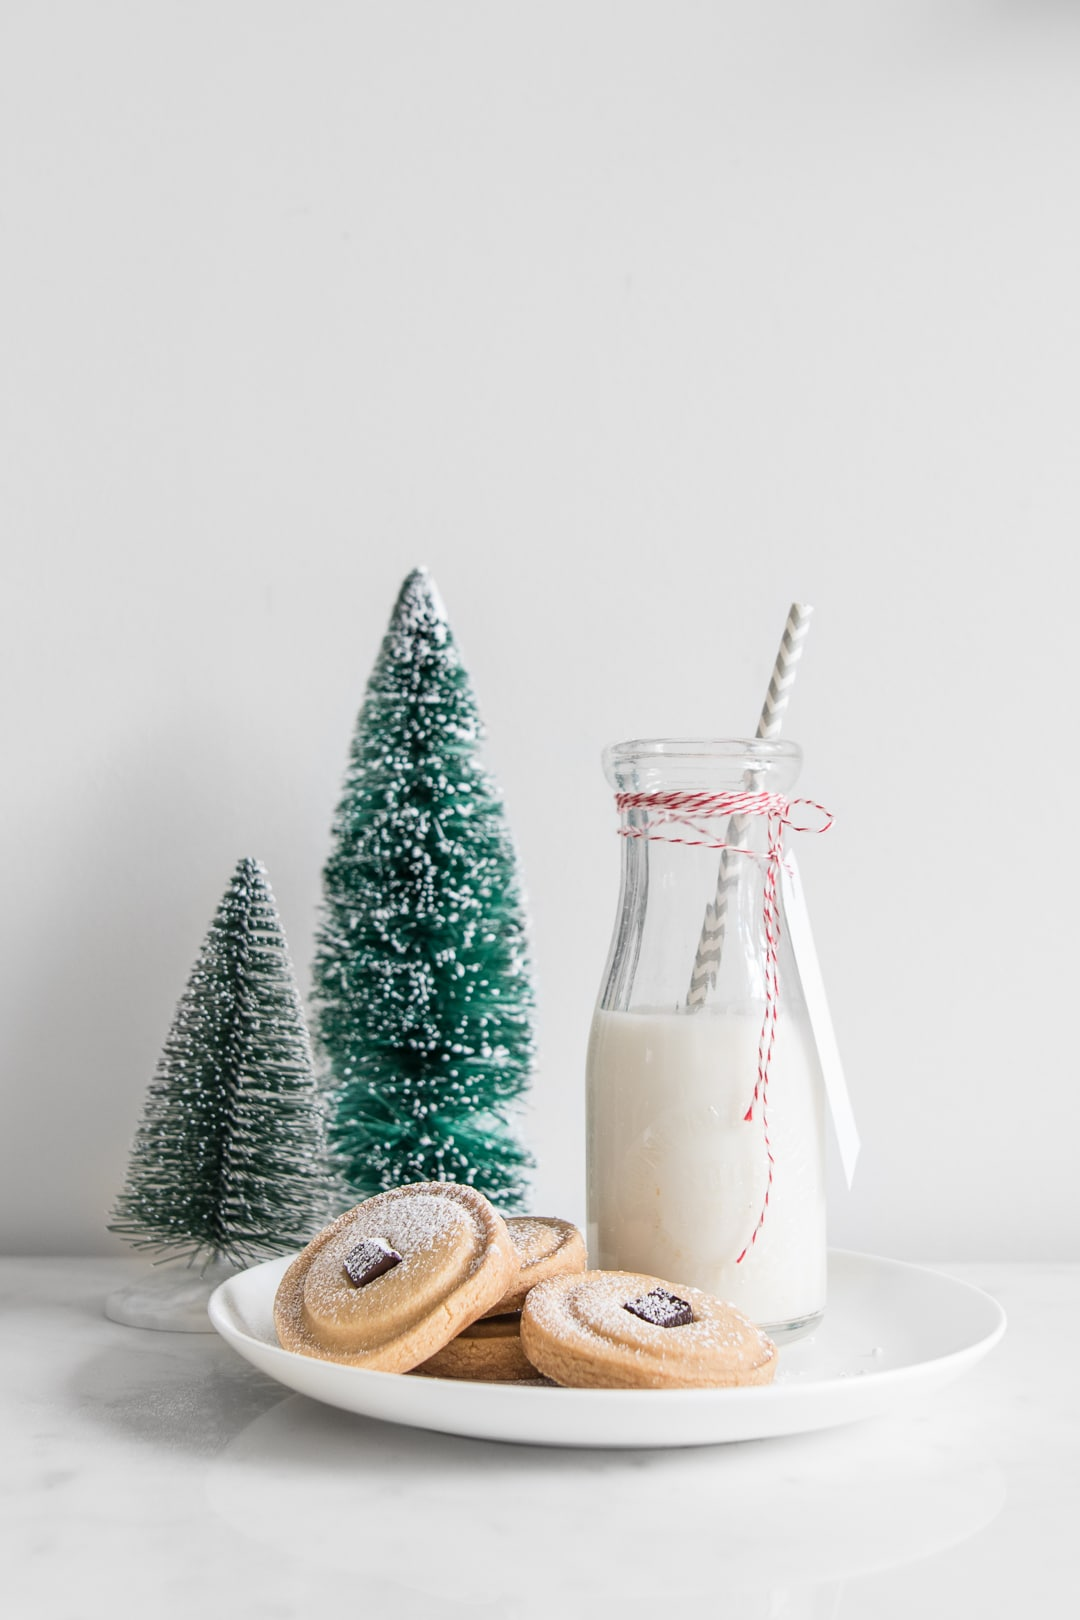 Holiday Cookie Recipes Mary MacLeod's Shortbread with glass bottle of milk and mini Christmas trees